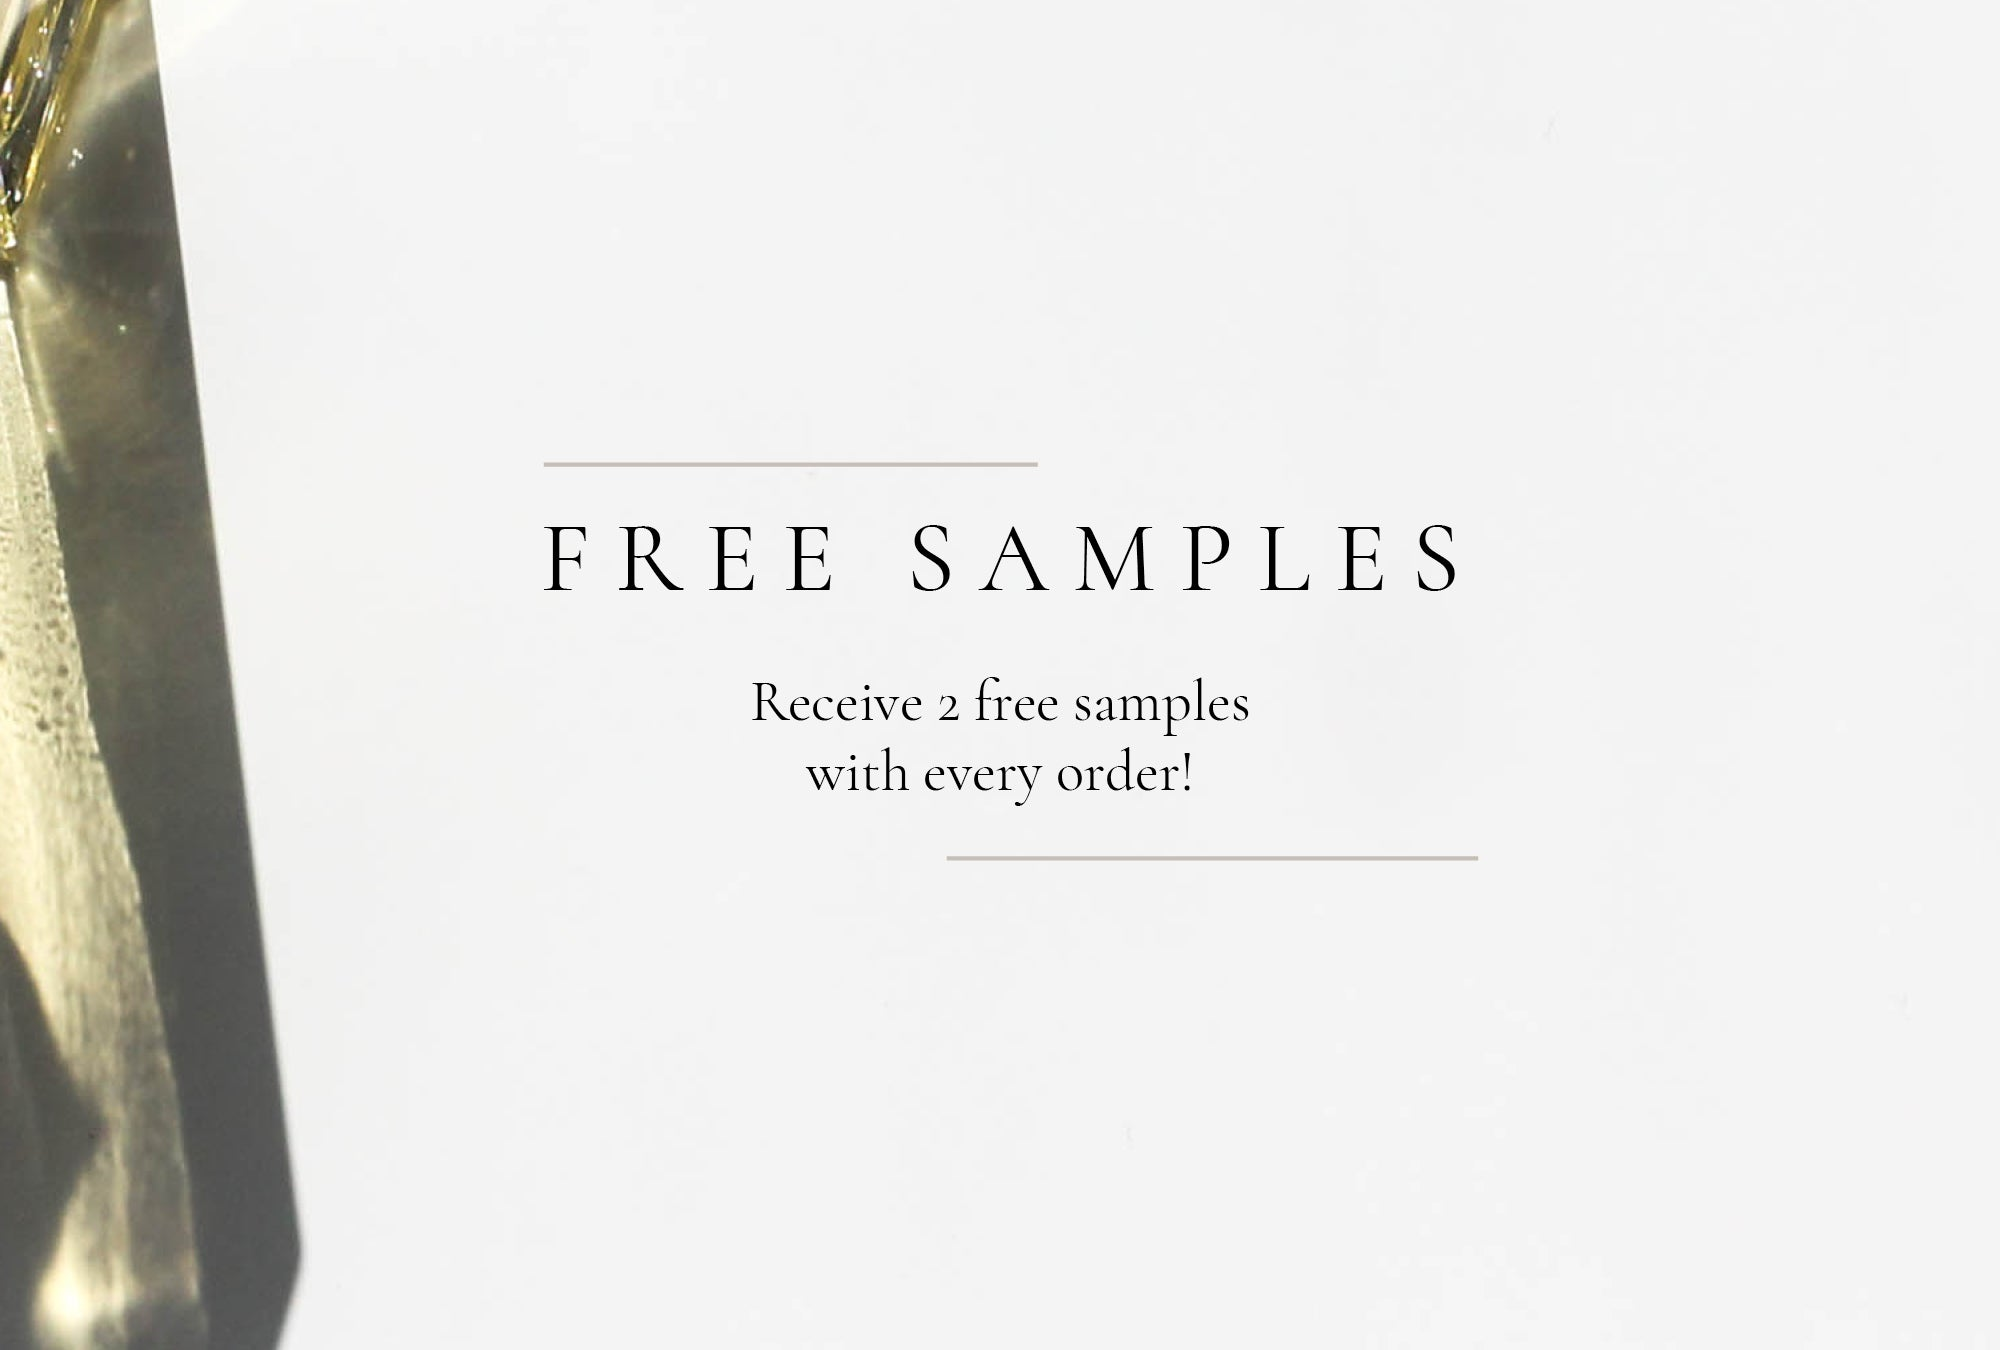 2 Free samples with every order!